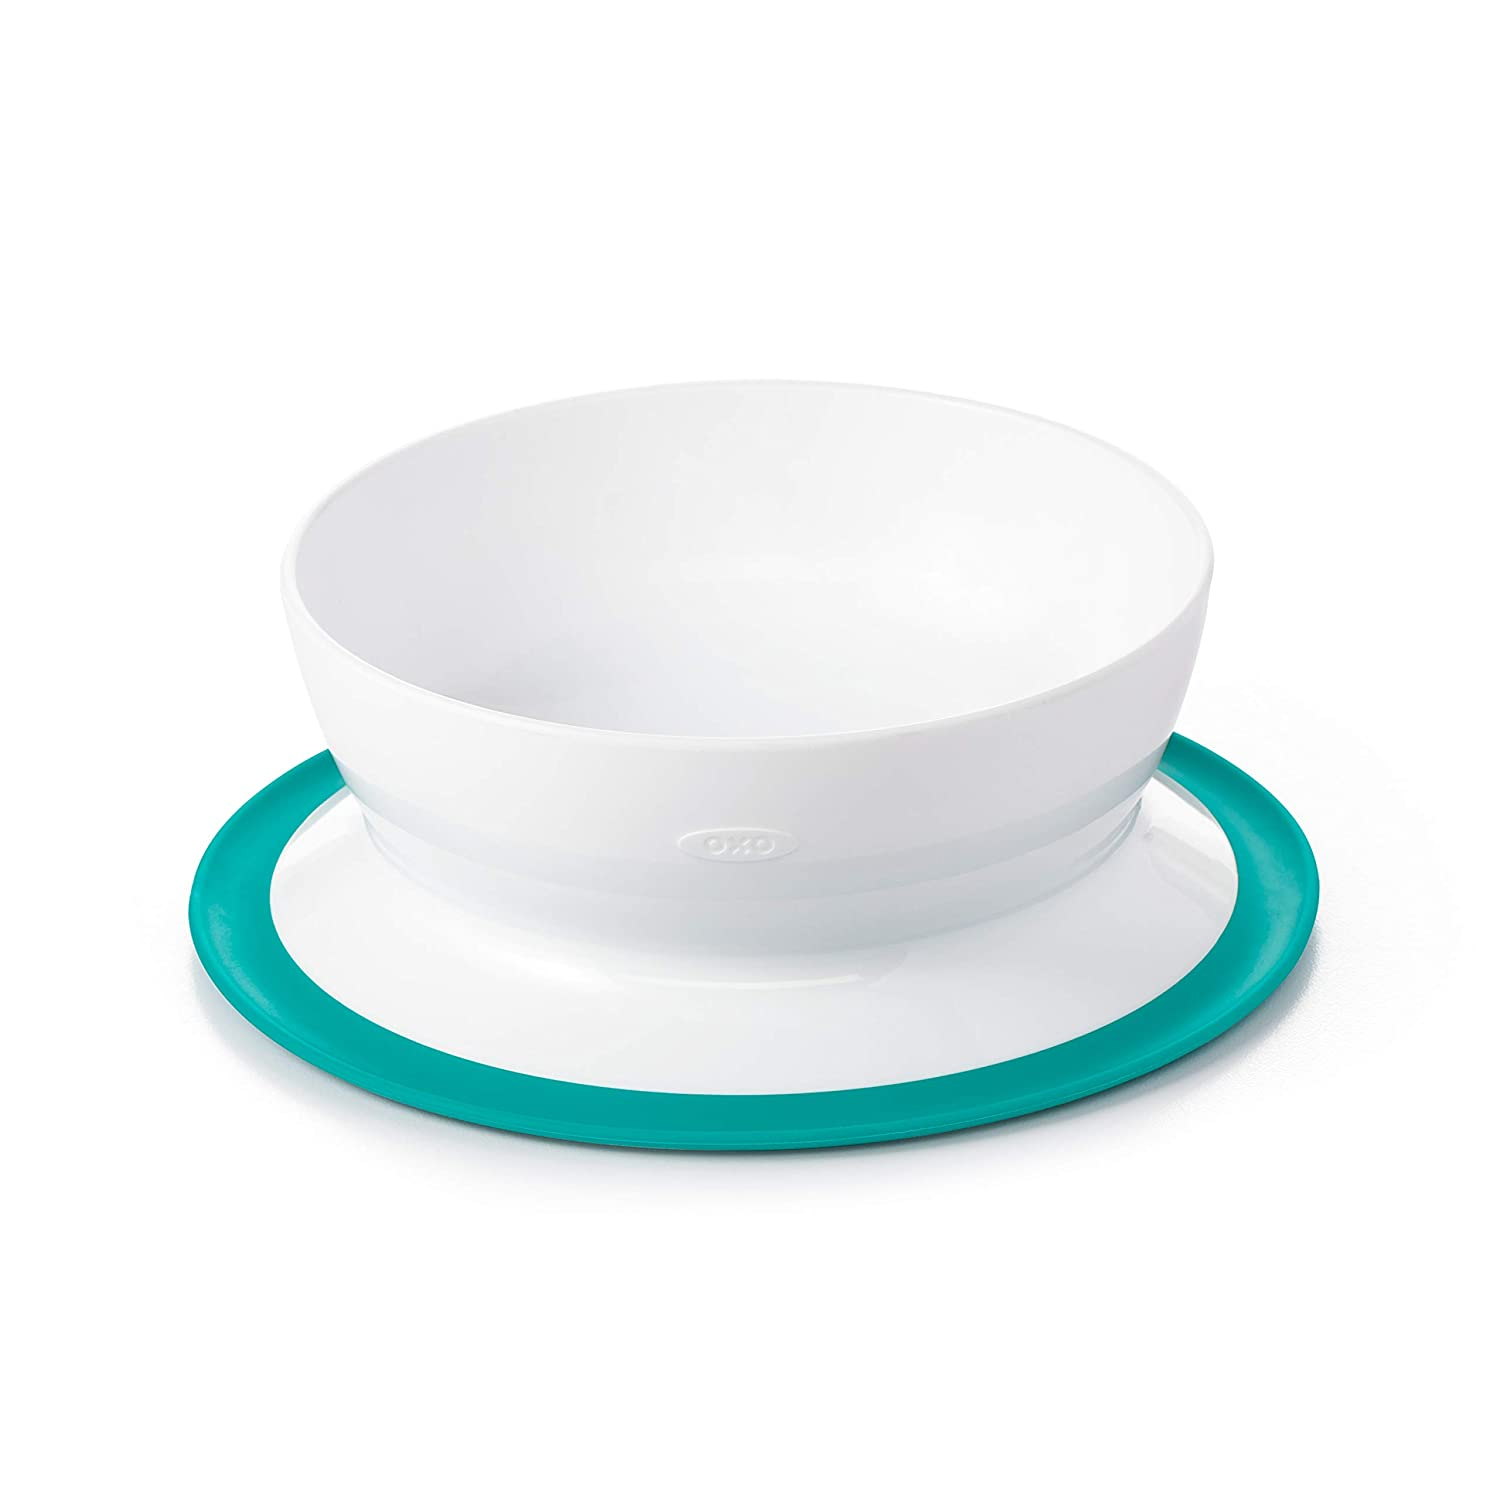 Top 9 Best Baby Bowls and Plates Reviews in 2019 9